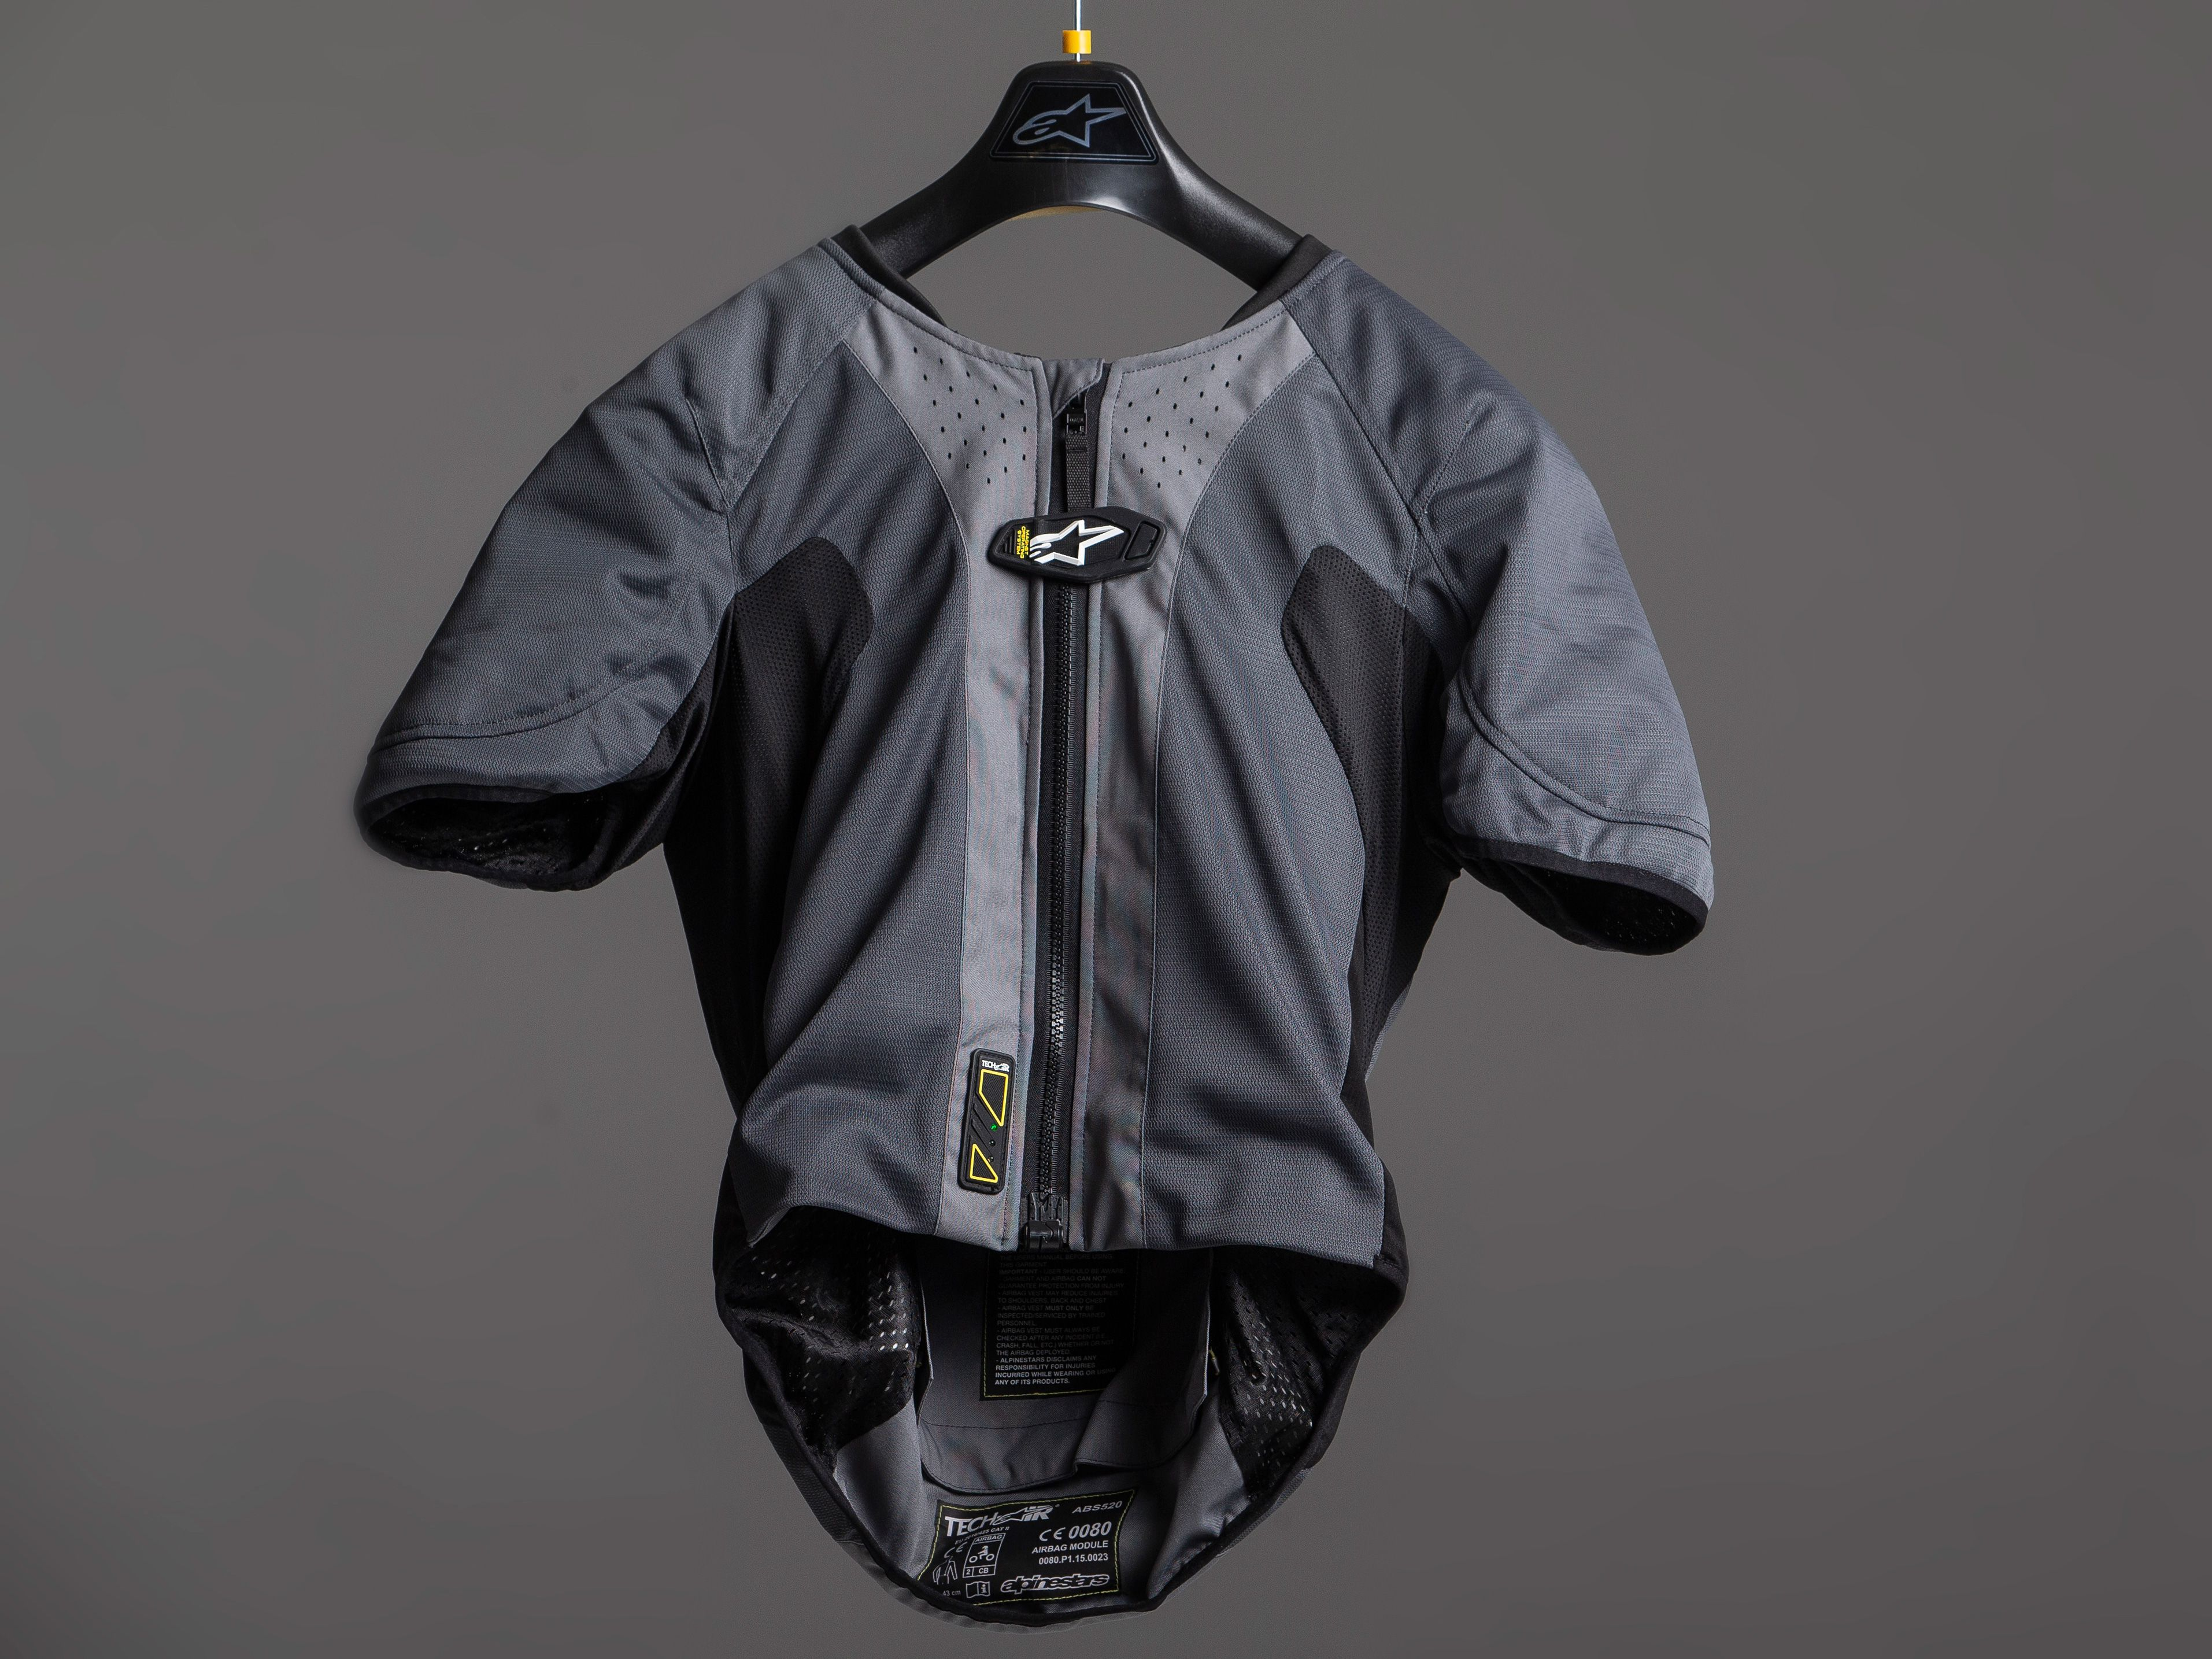 Alpinestars' Tech-Air 5 airbag vest is one of the latest protective gear options and is now more versatile than ever.